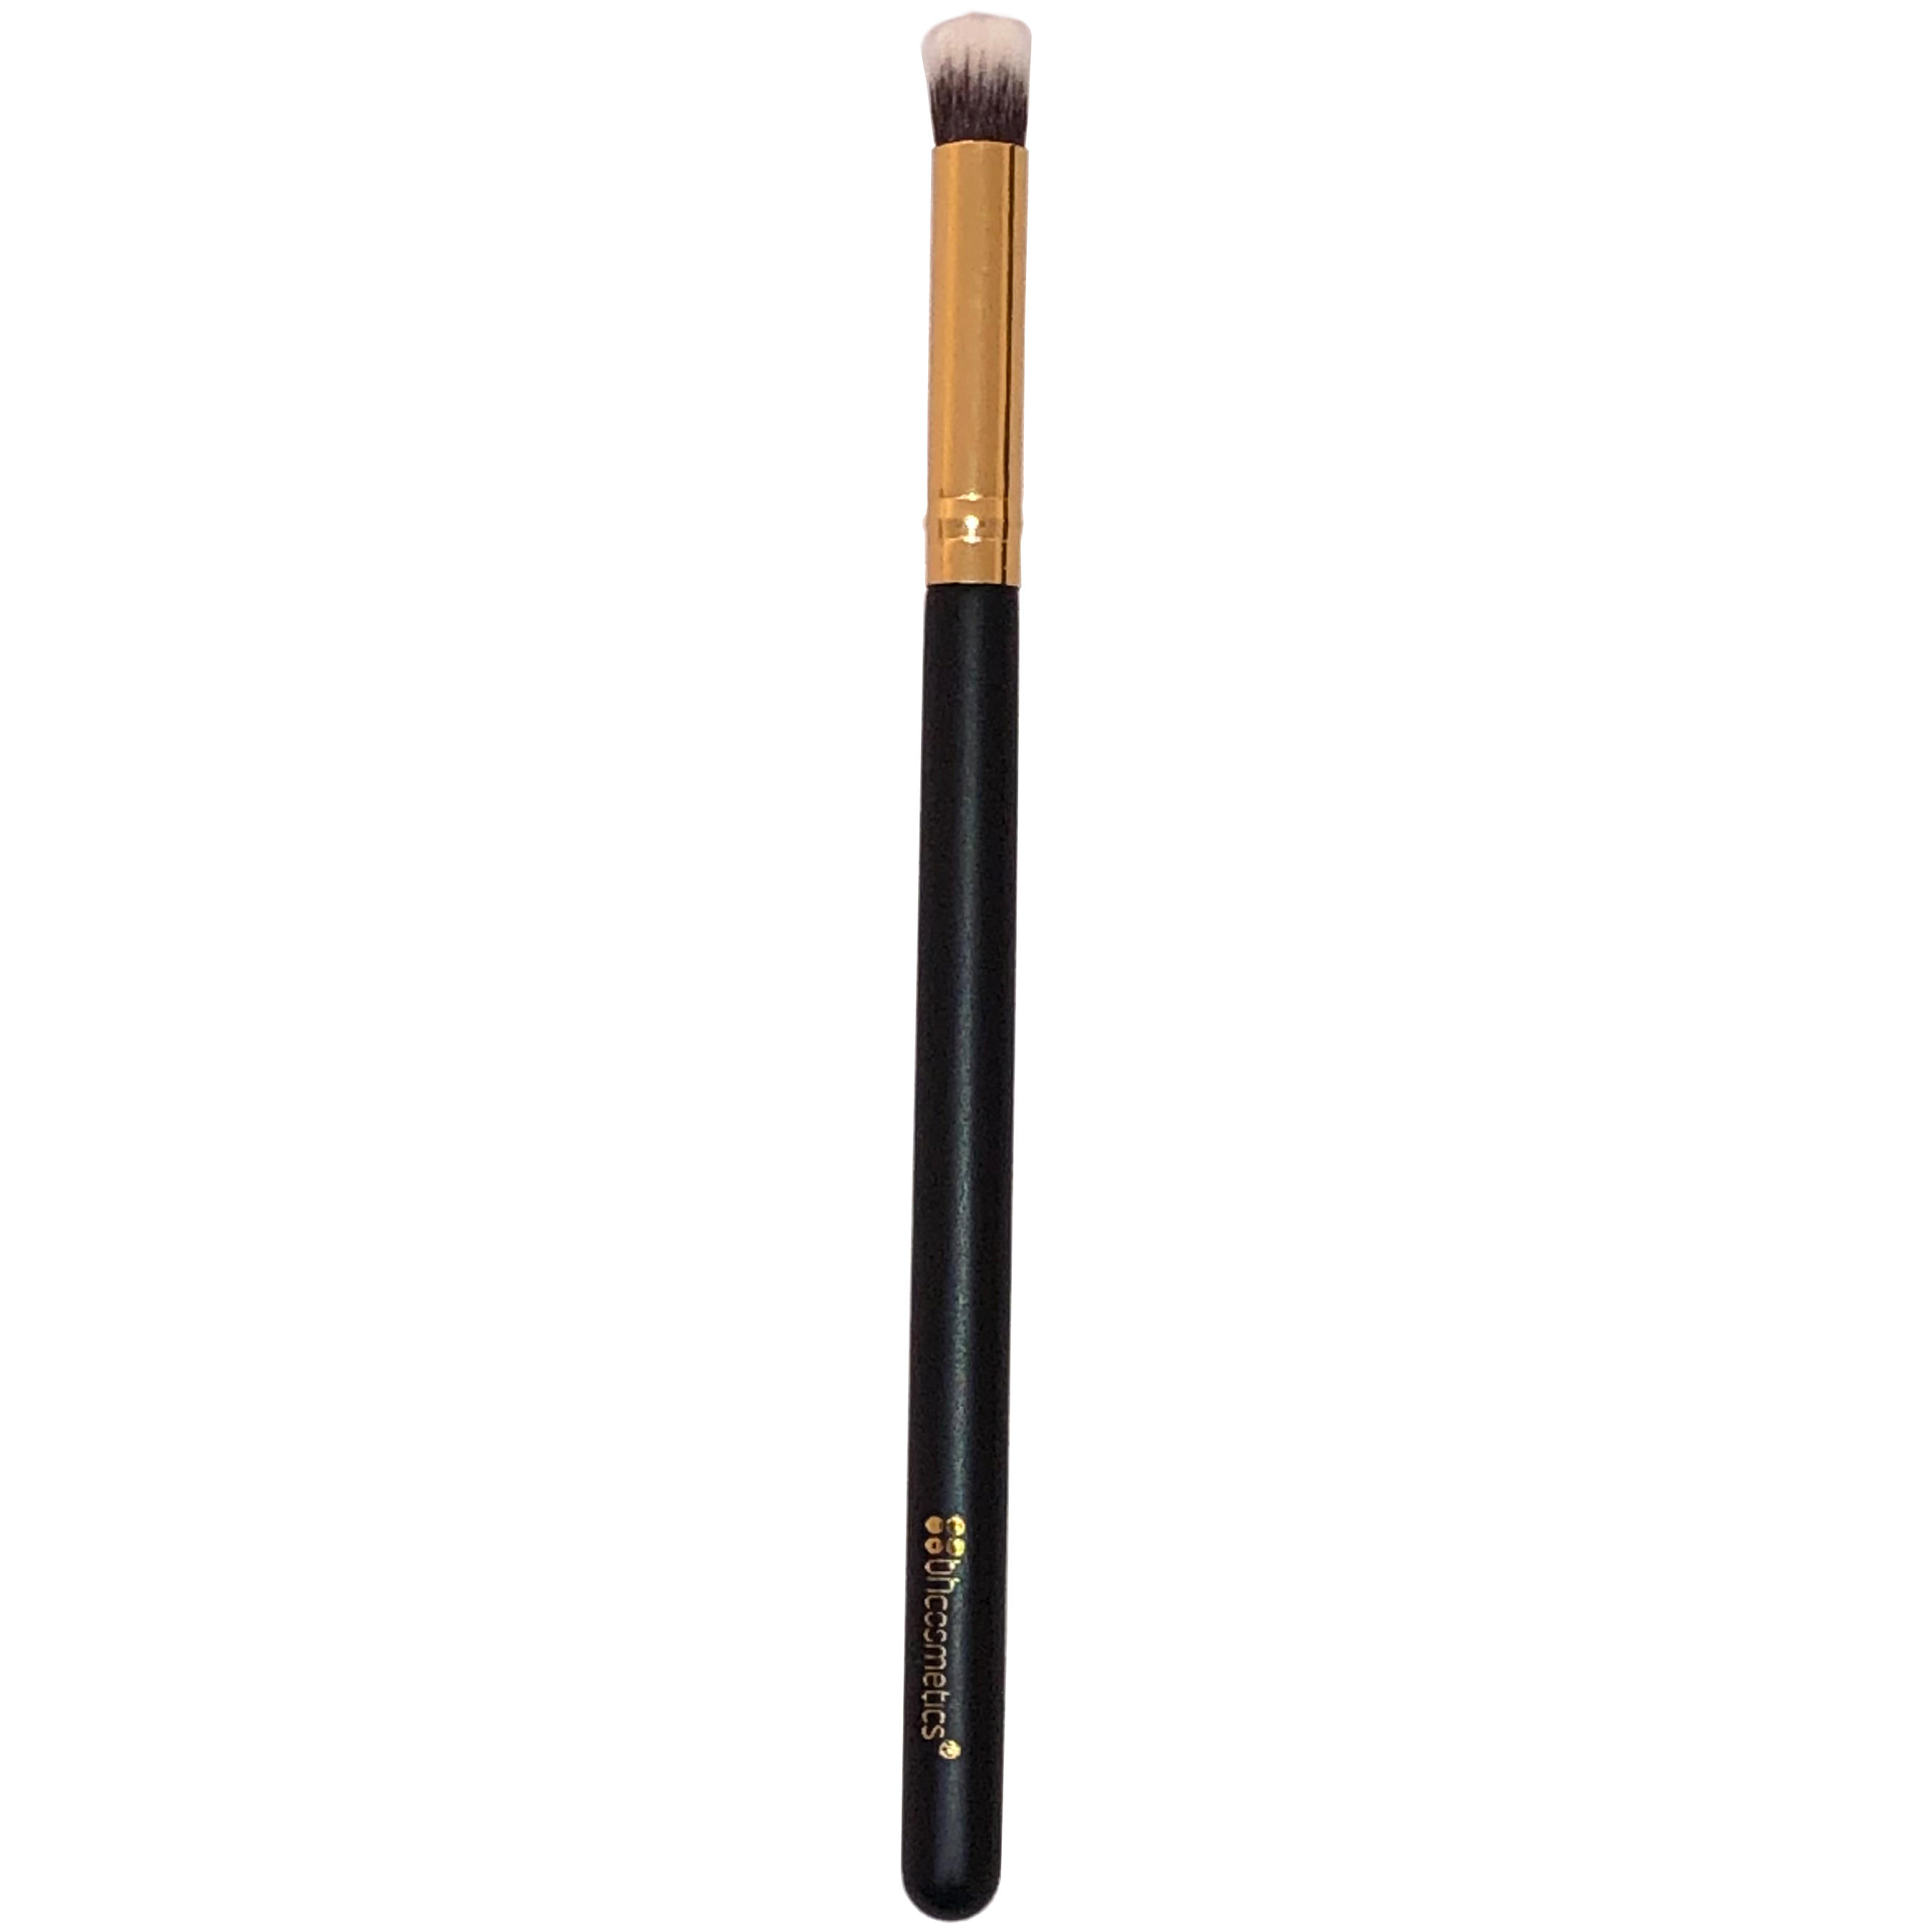 BH Cosmetics Spot Concealer Face Brush Back